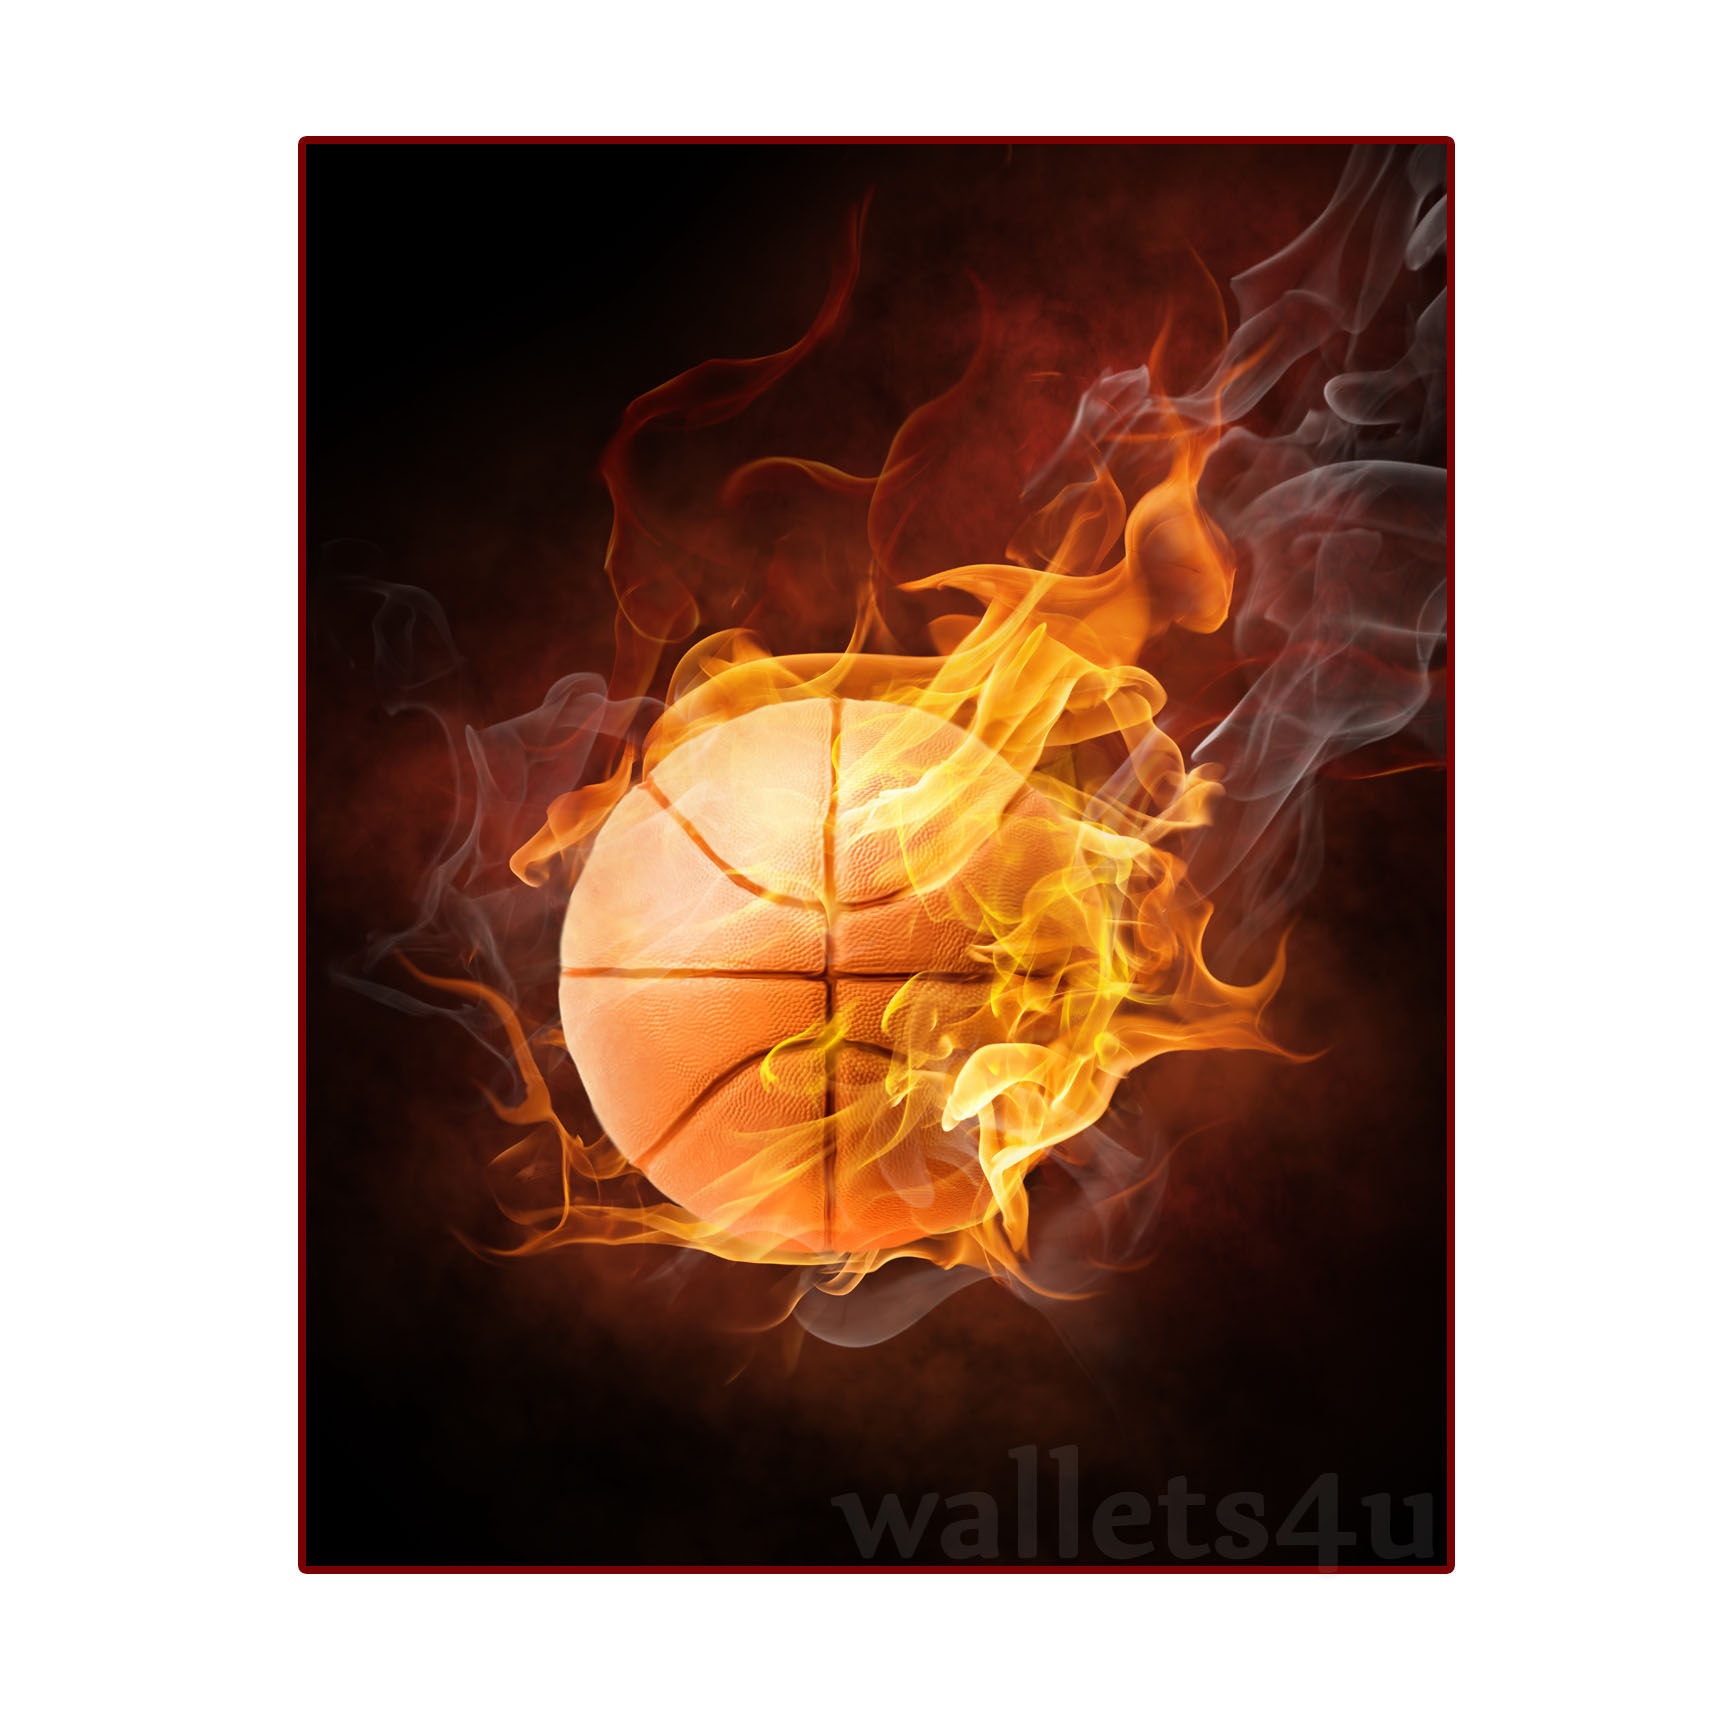 Magic Wallet, Baseketball Ball on fire - MWSPP 0173